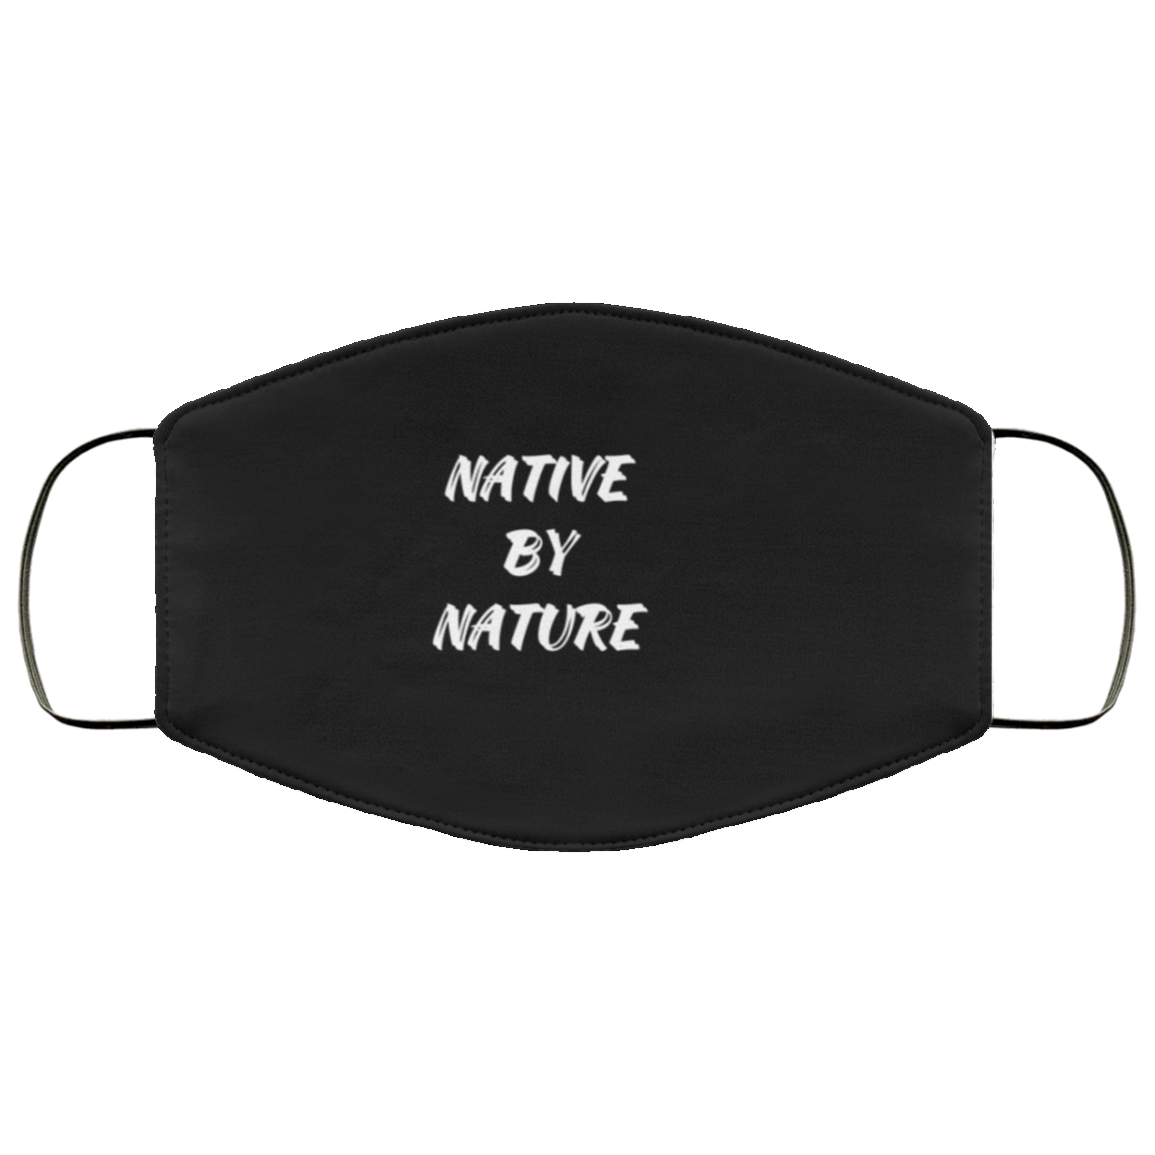 Native by Nature Face Mask - OMG I Really Want That